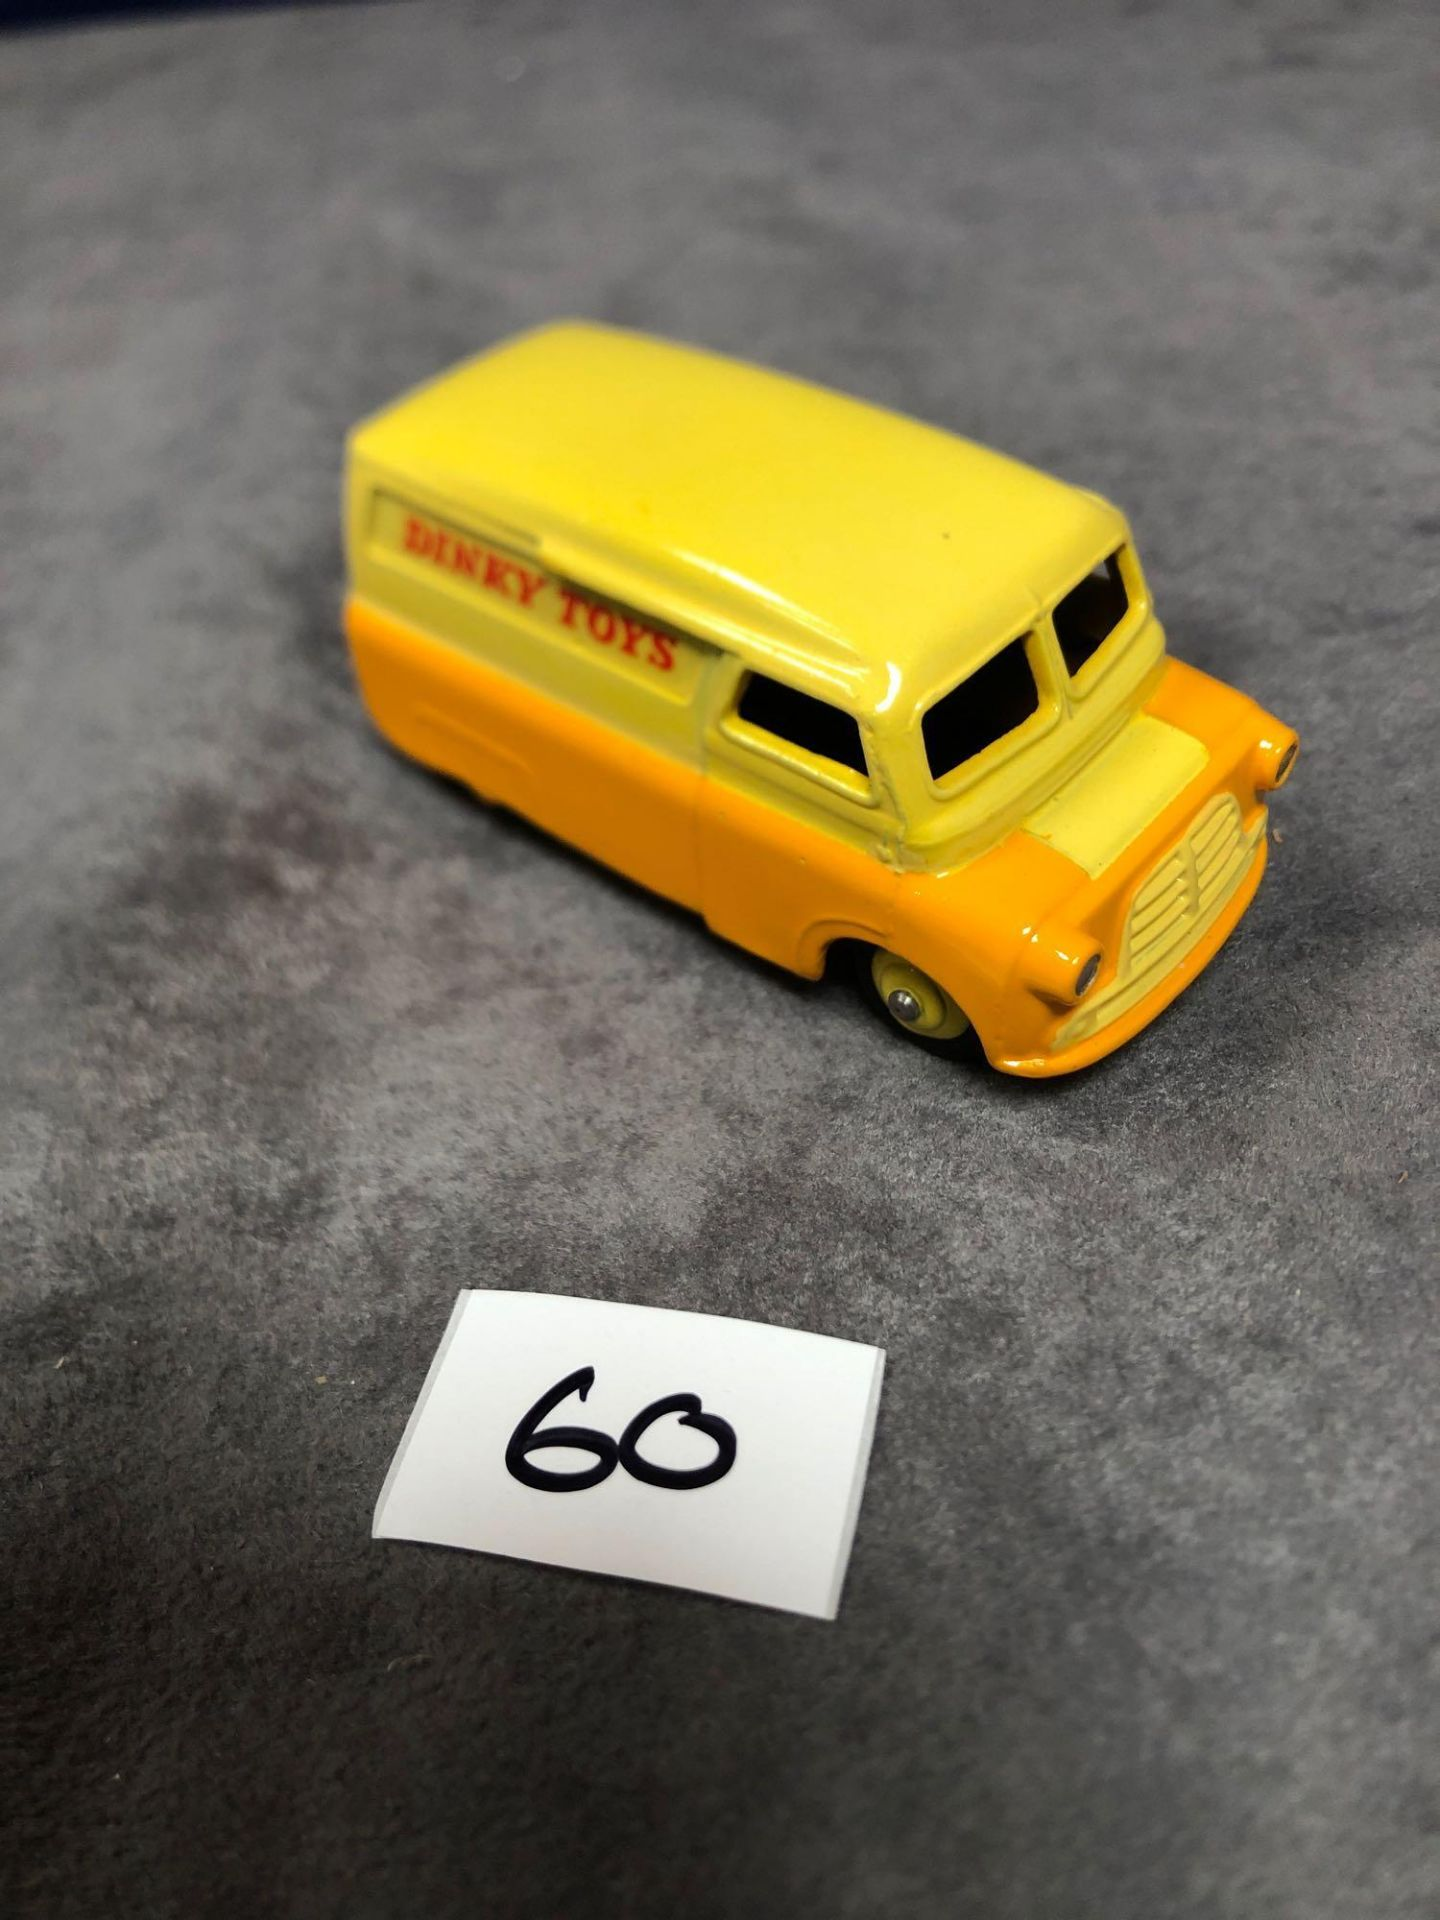 Dinky #482 Bedford Van Yellow/Orange (Dinky Toys) - Yellow Wheels and Silver Trim. 1956 - 1960